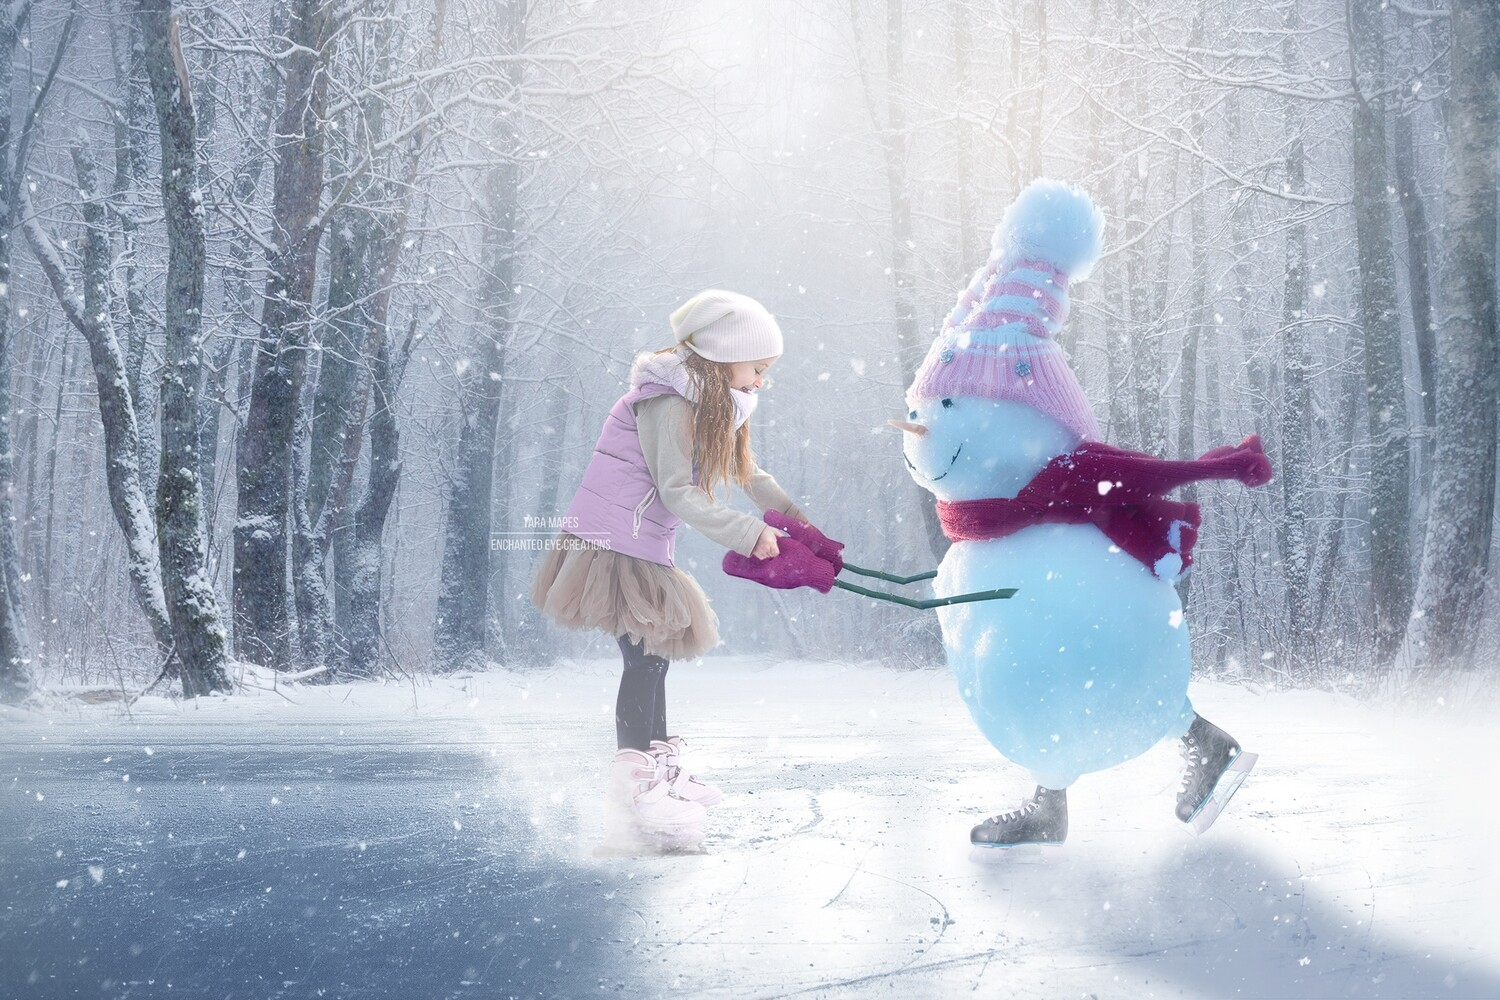 Snowgirl Iceskating -Snowman Ice Skating -Winter Snowy Scene- Separate Snow Overlay - Christmas Digital Background Backdrop